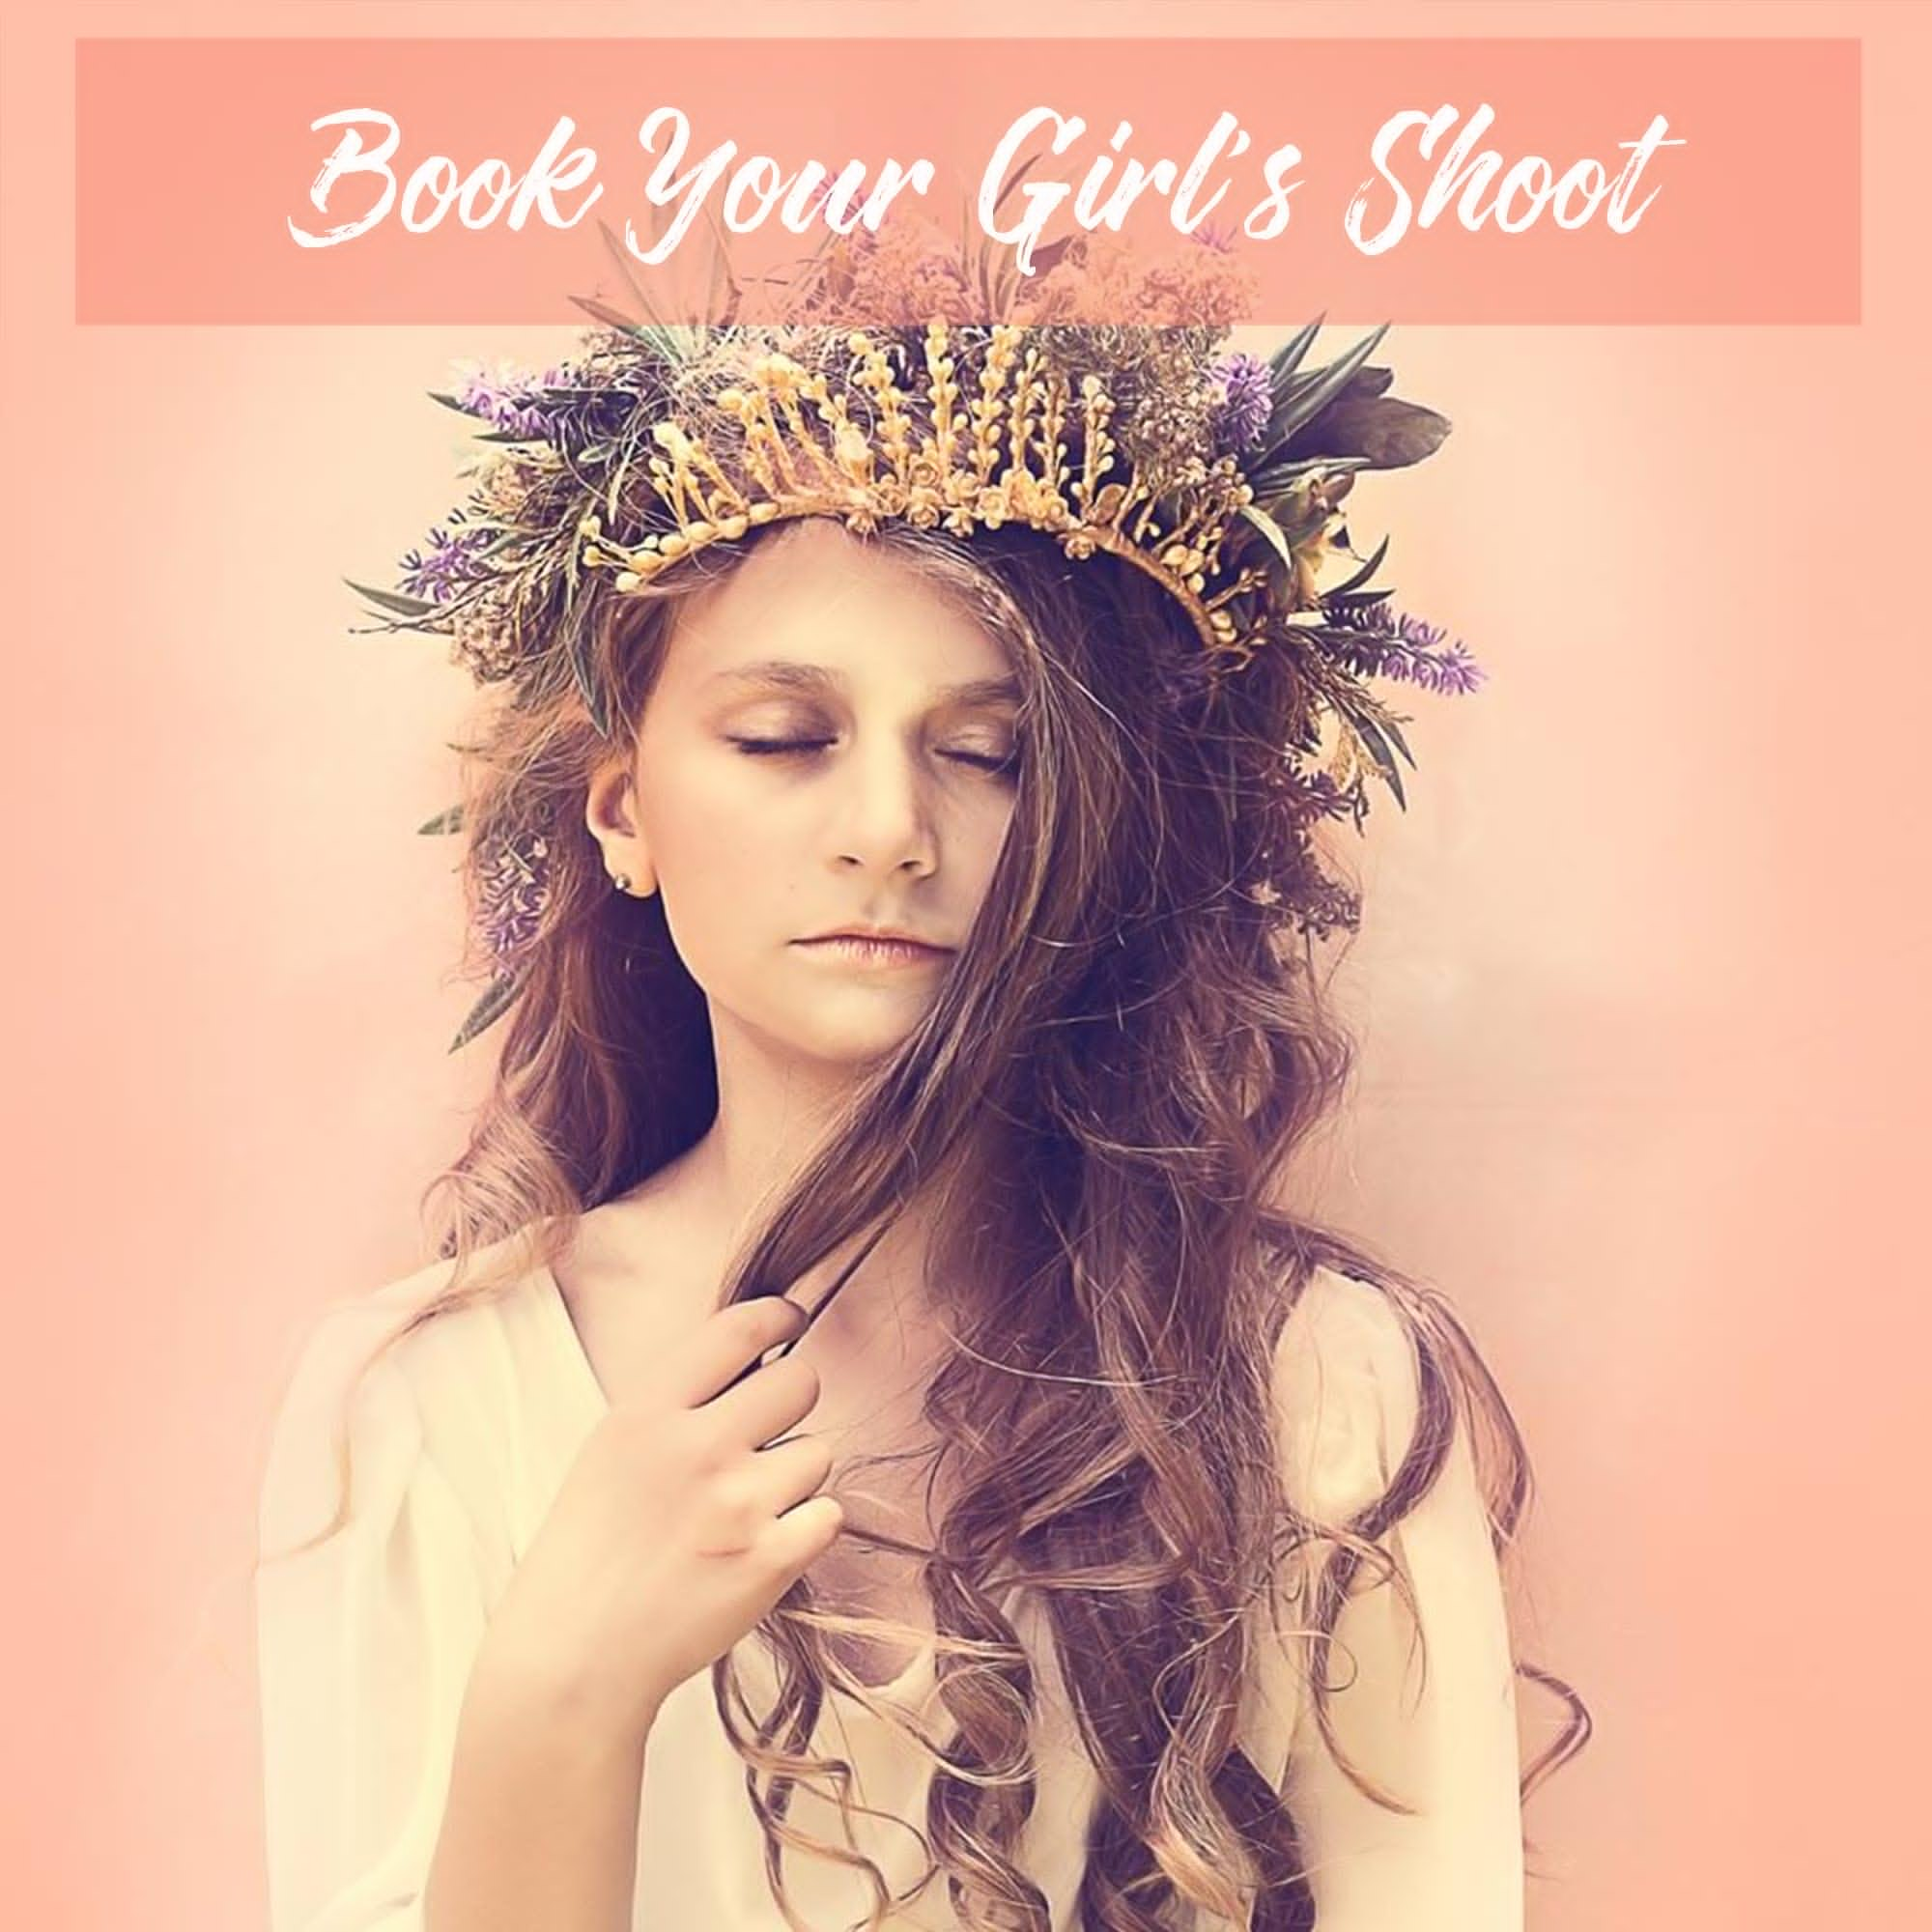 Book Your Girls Shoot!